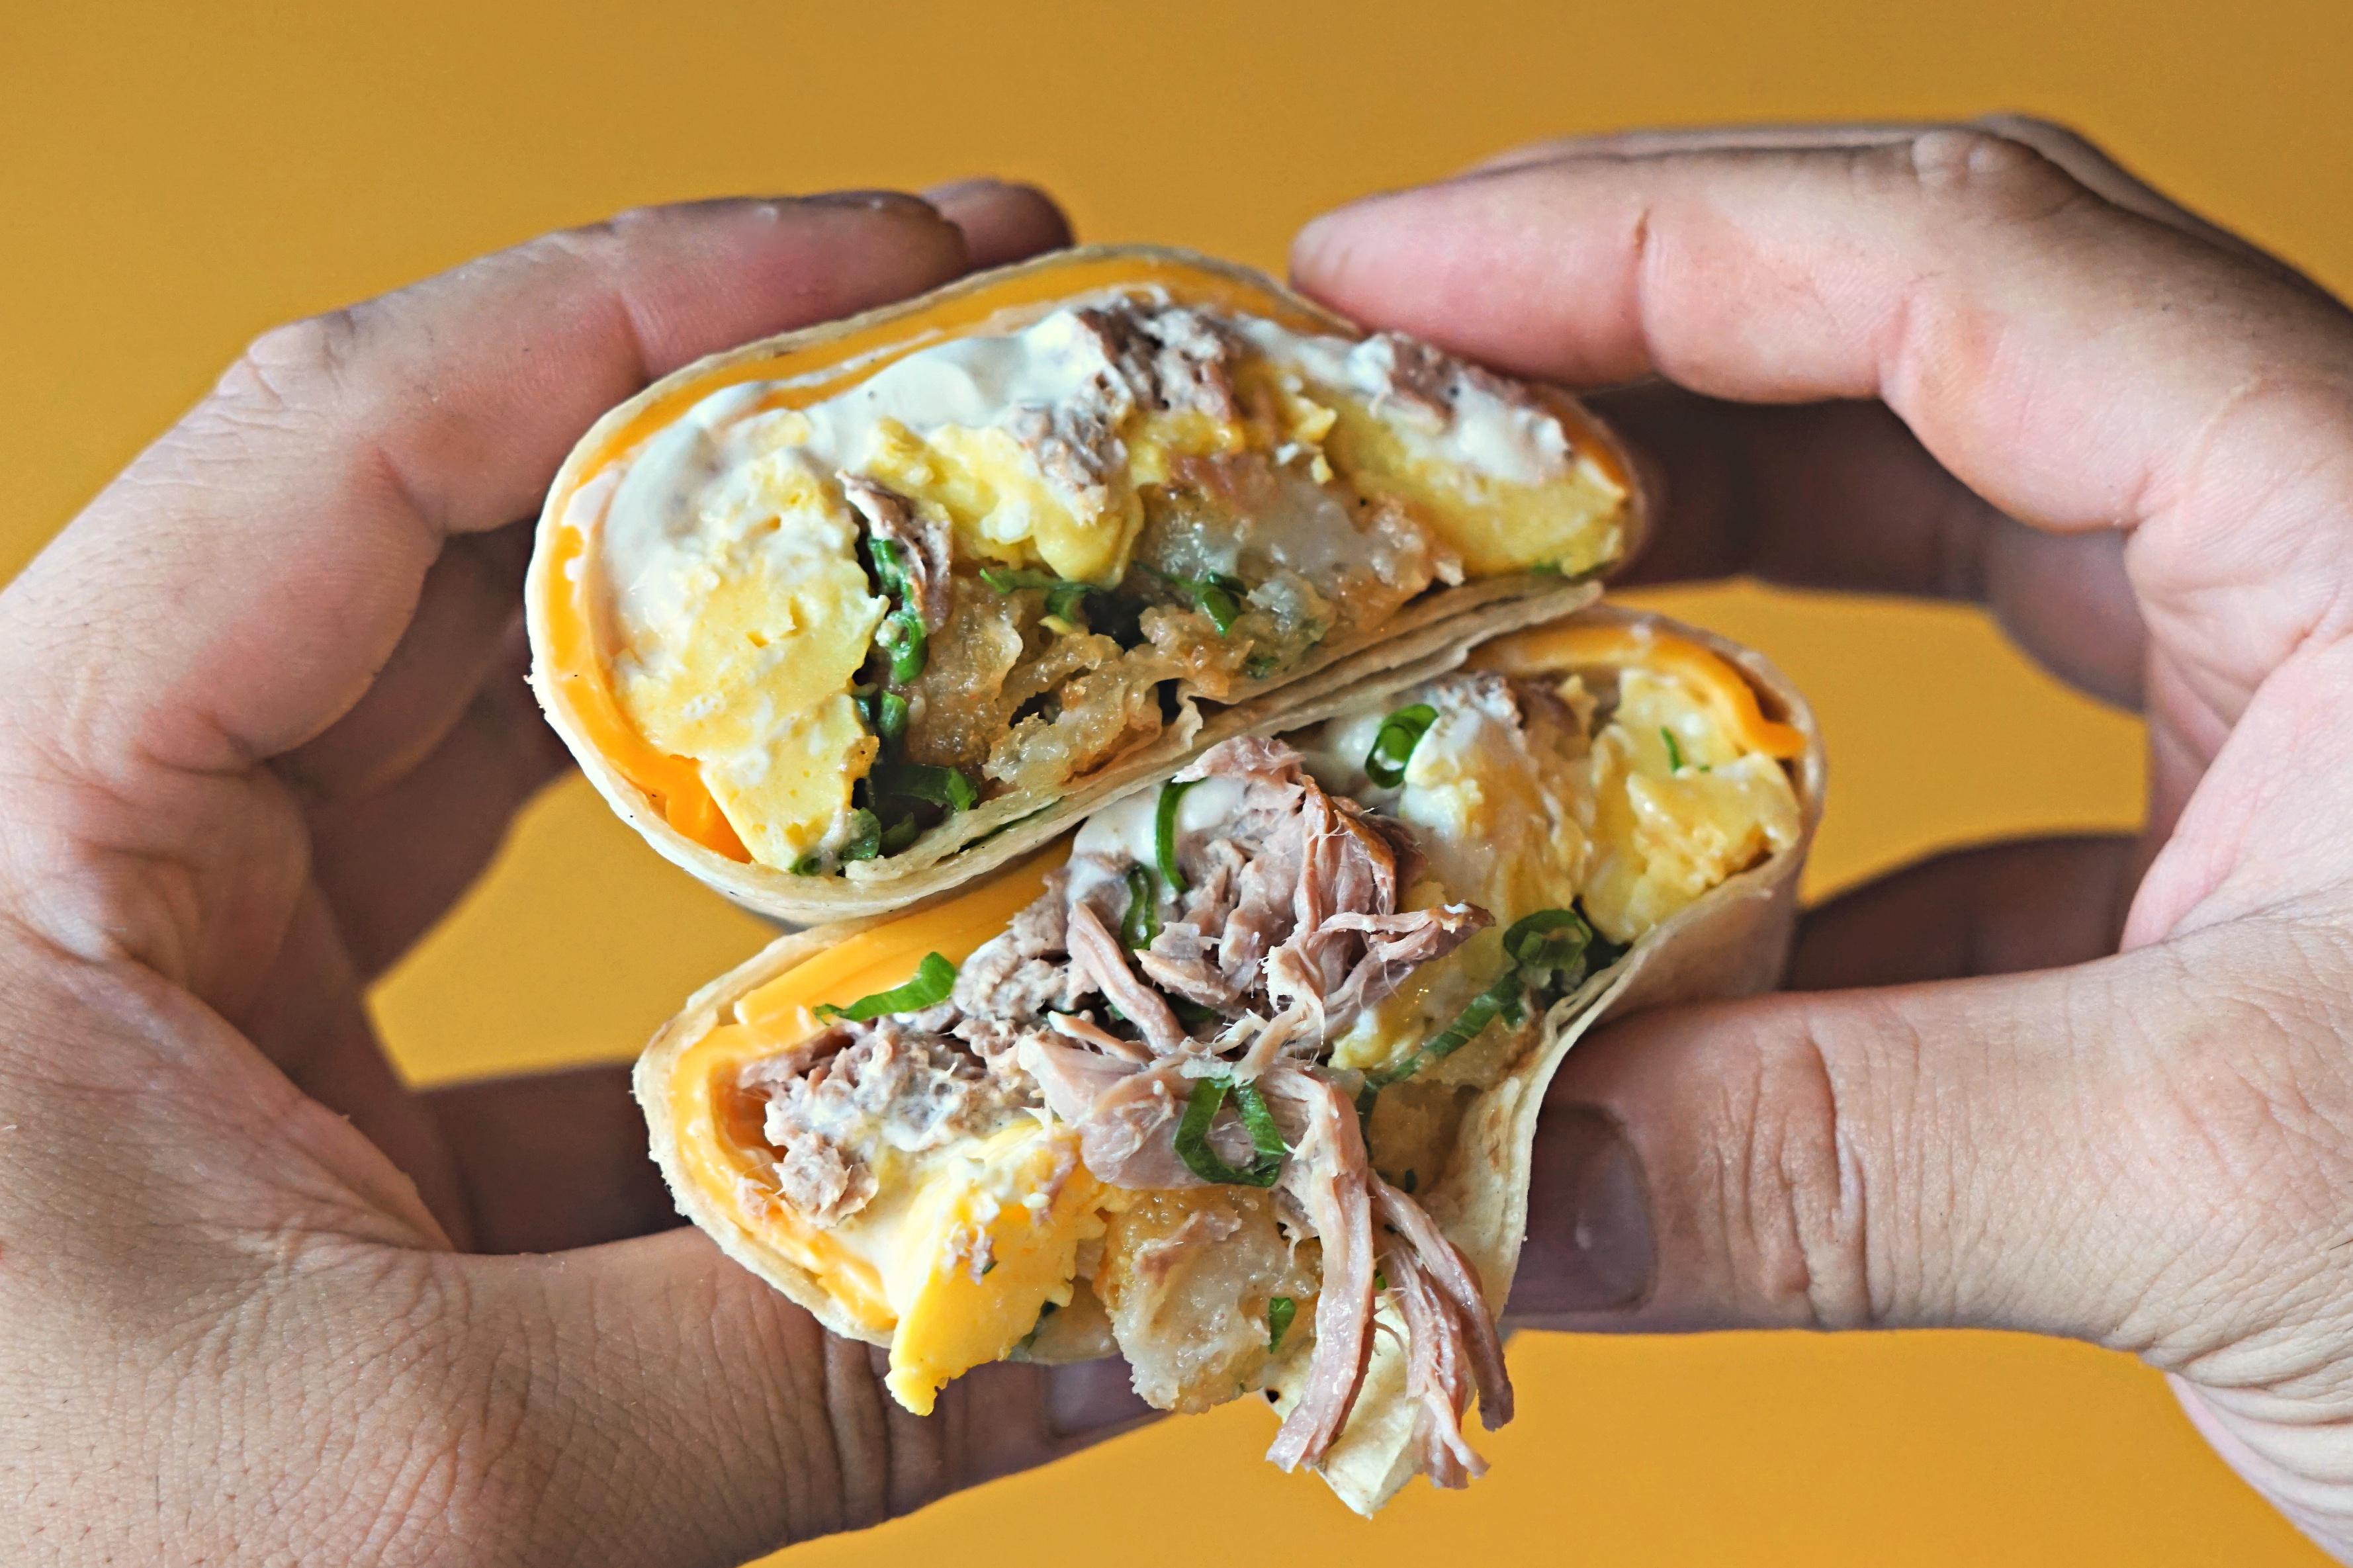 A kalua pork breakfast burrito at Alexandria's Evening Star Cafe. (Image: Courtesy Evening Star Cafe)